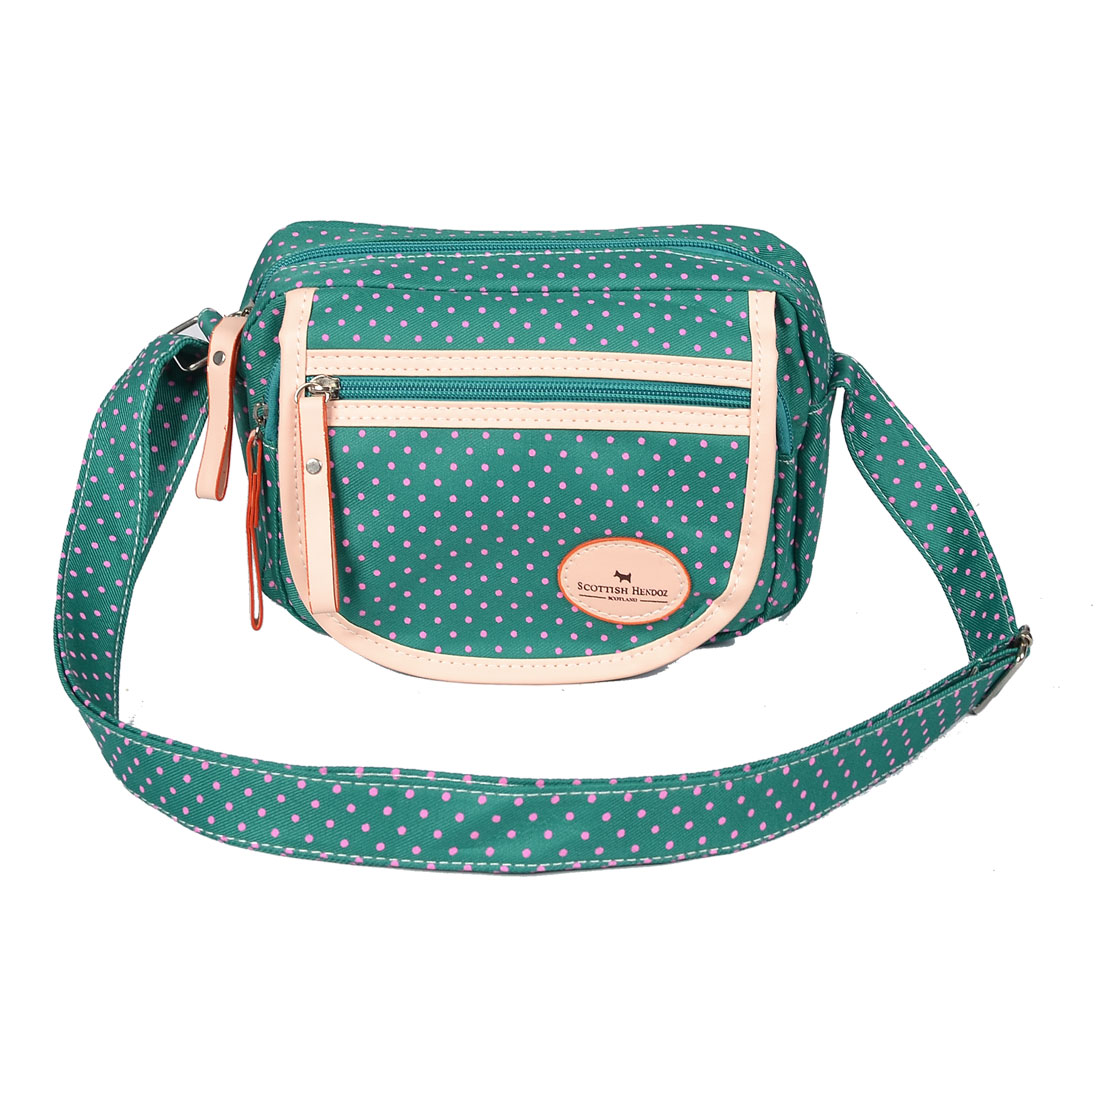 Ladies Adjustable Strap Dot Pattern 3-pocket Green Canvas Shoulder Bag Handbag